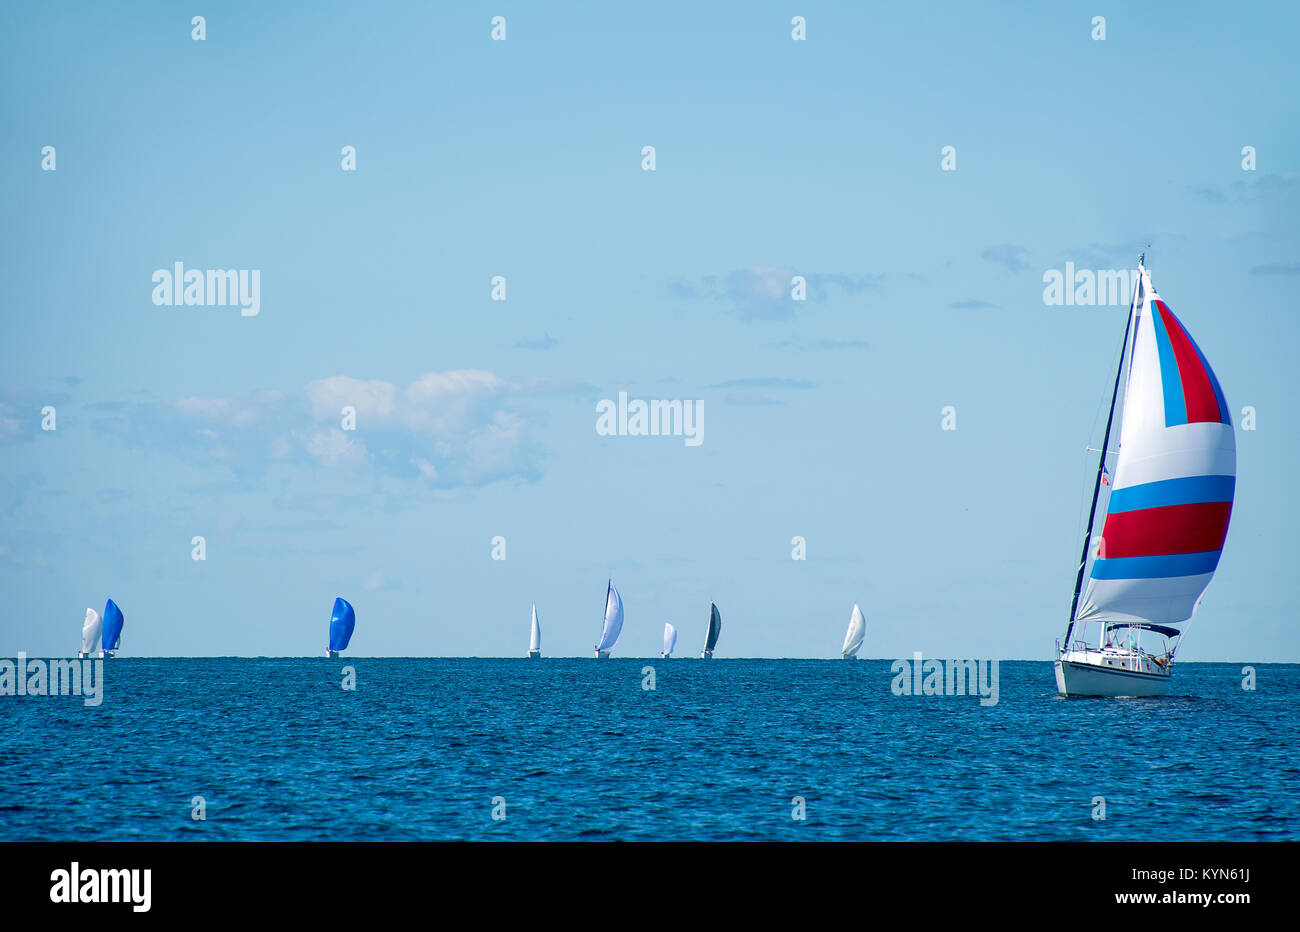 sailboats with spinnakers in summer regatta on Lake Michigan - Stock Image